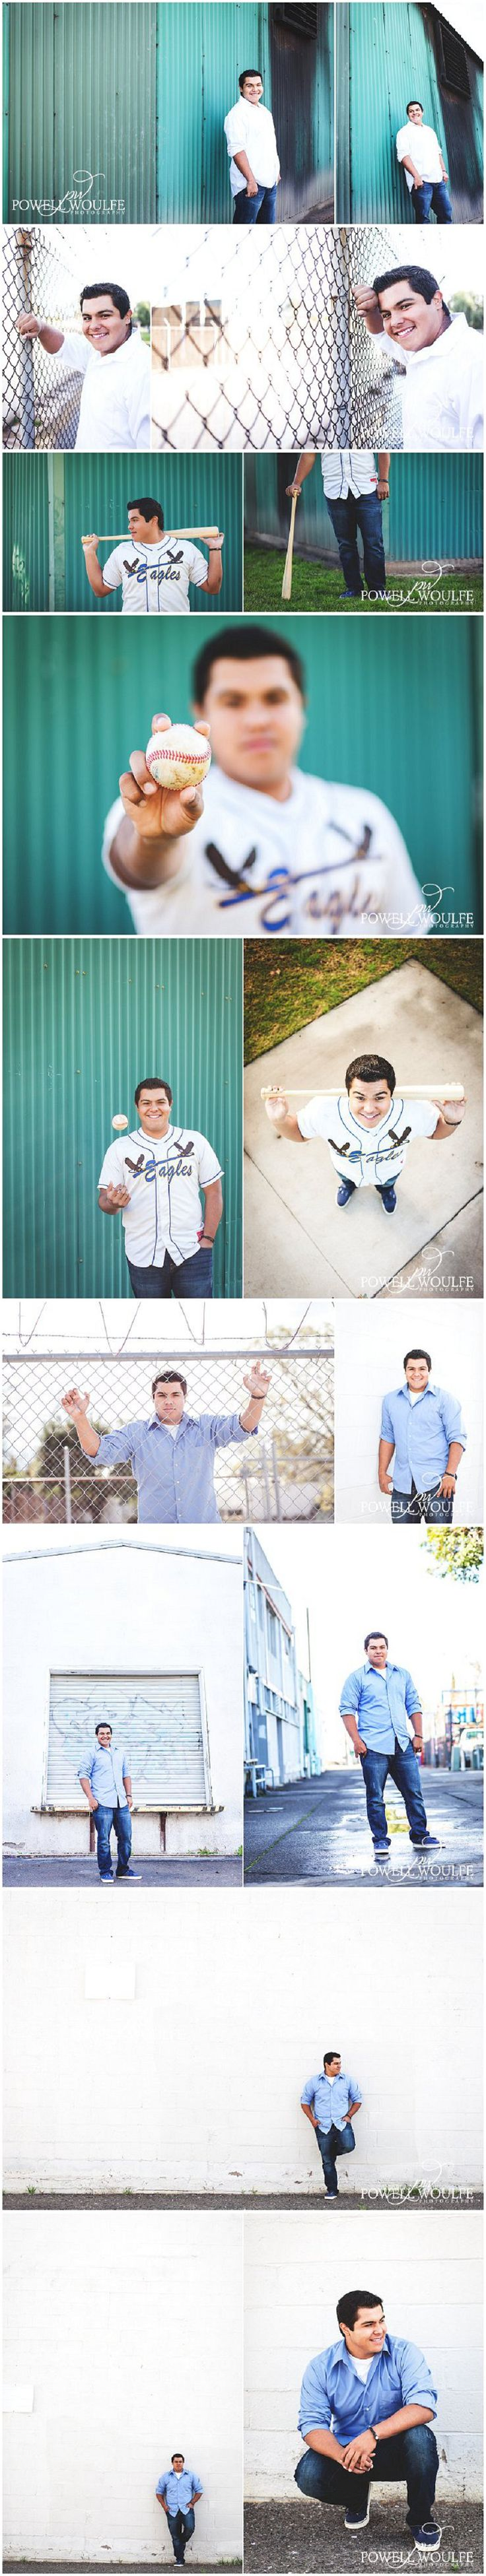 High School Senior Guy Portraits | San Diego - Swoon Seniors by Powell Woulfe Photography http://powellwoulfe.com/blog/2013/02/05/david-class-of-2013-escondido-high-school-senior-pictures/#